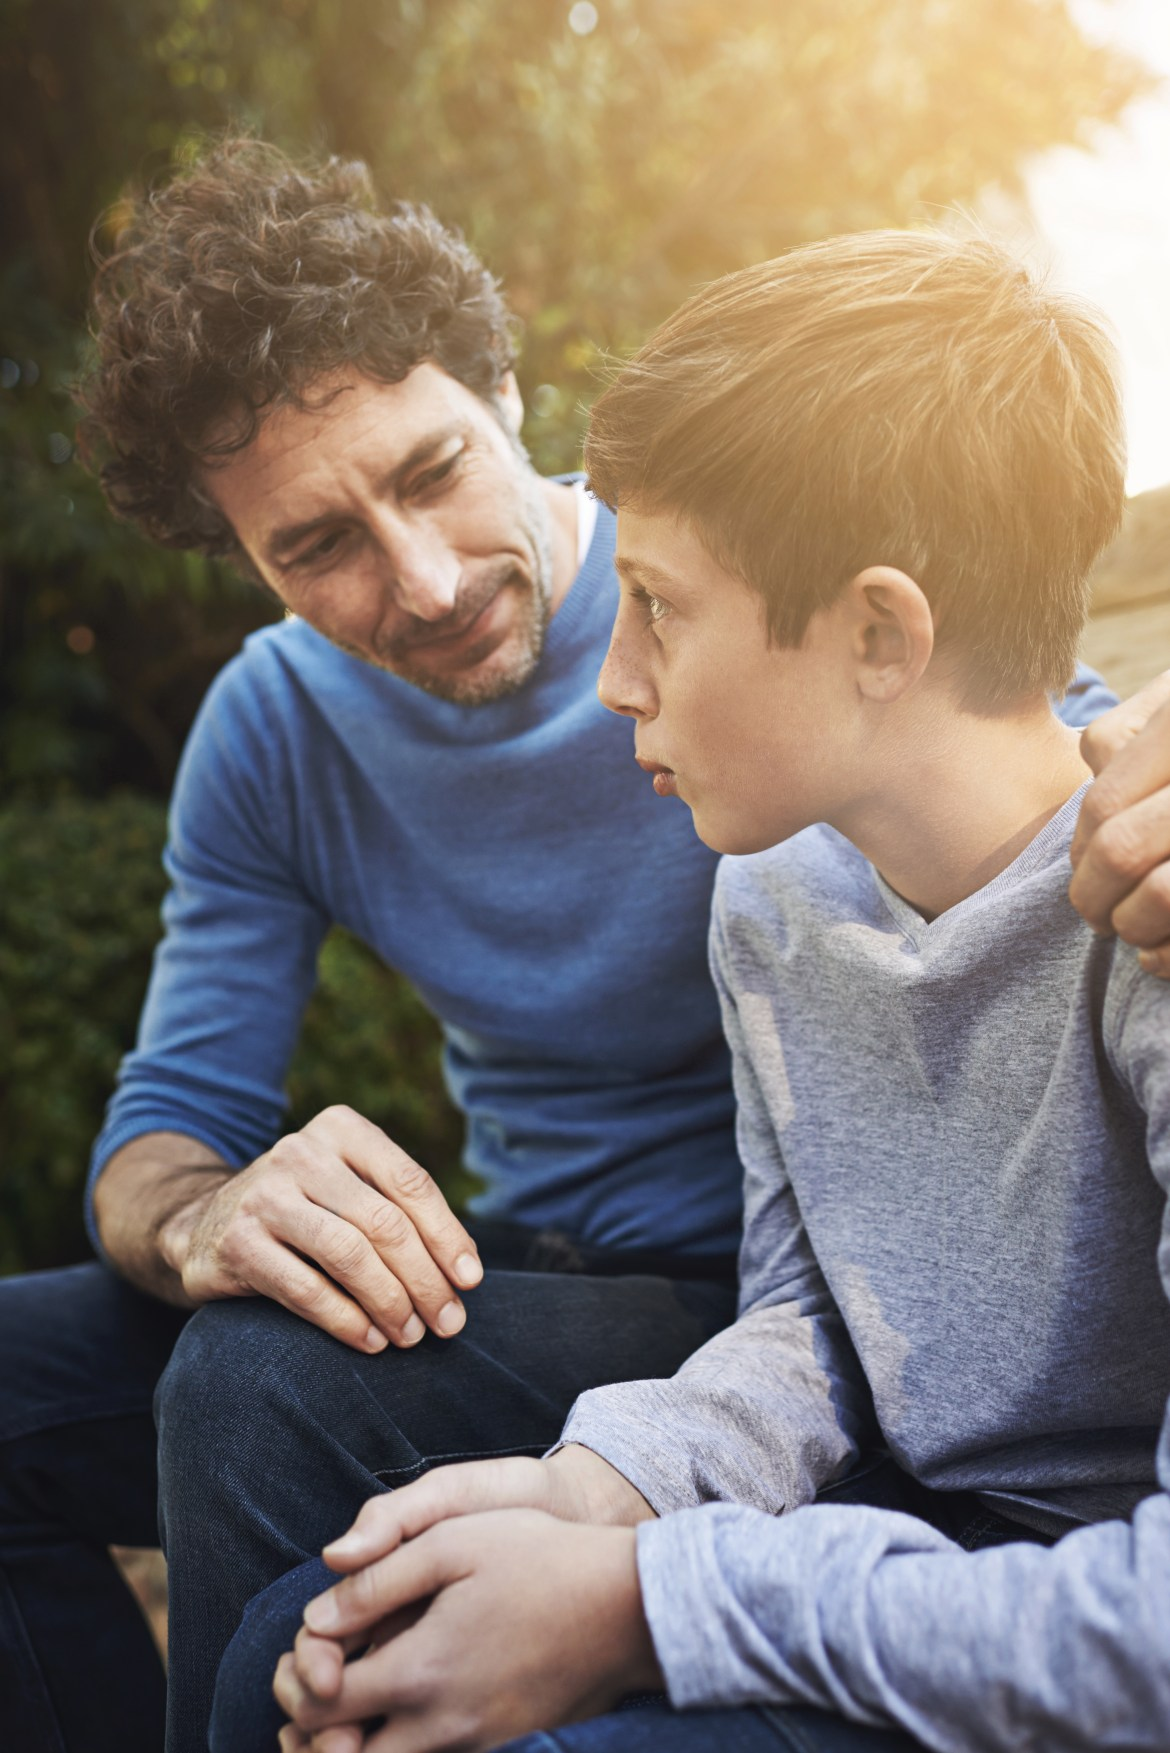 Parents have been urged to have open discussions about social media with their kids